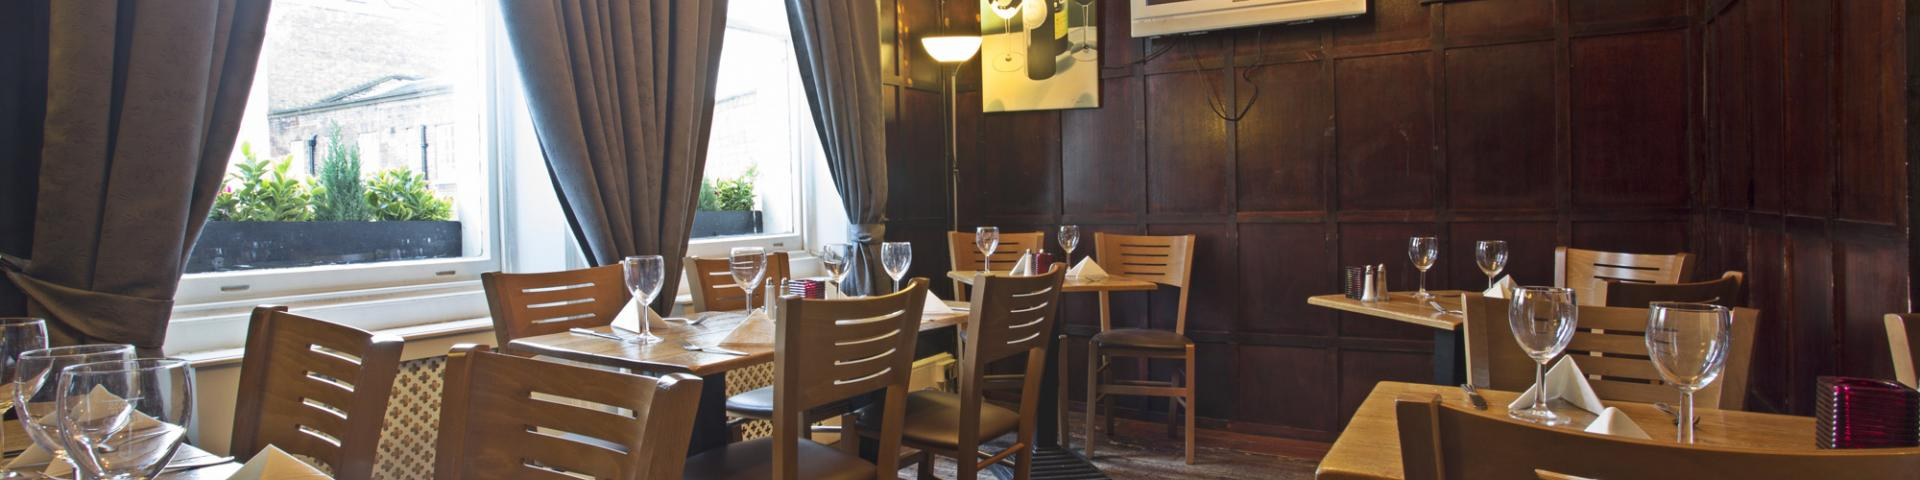 Food and drink at The Horse and Groom Belgravia